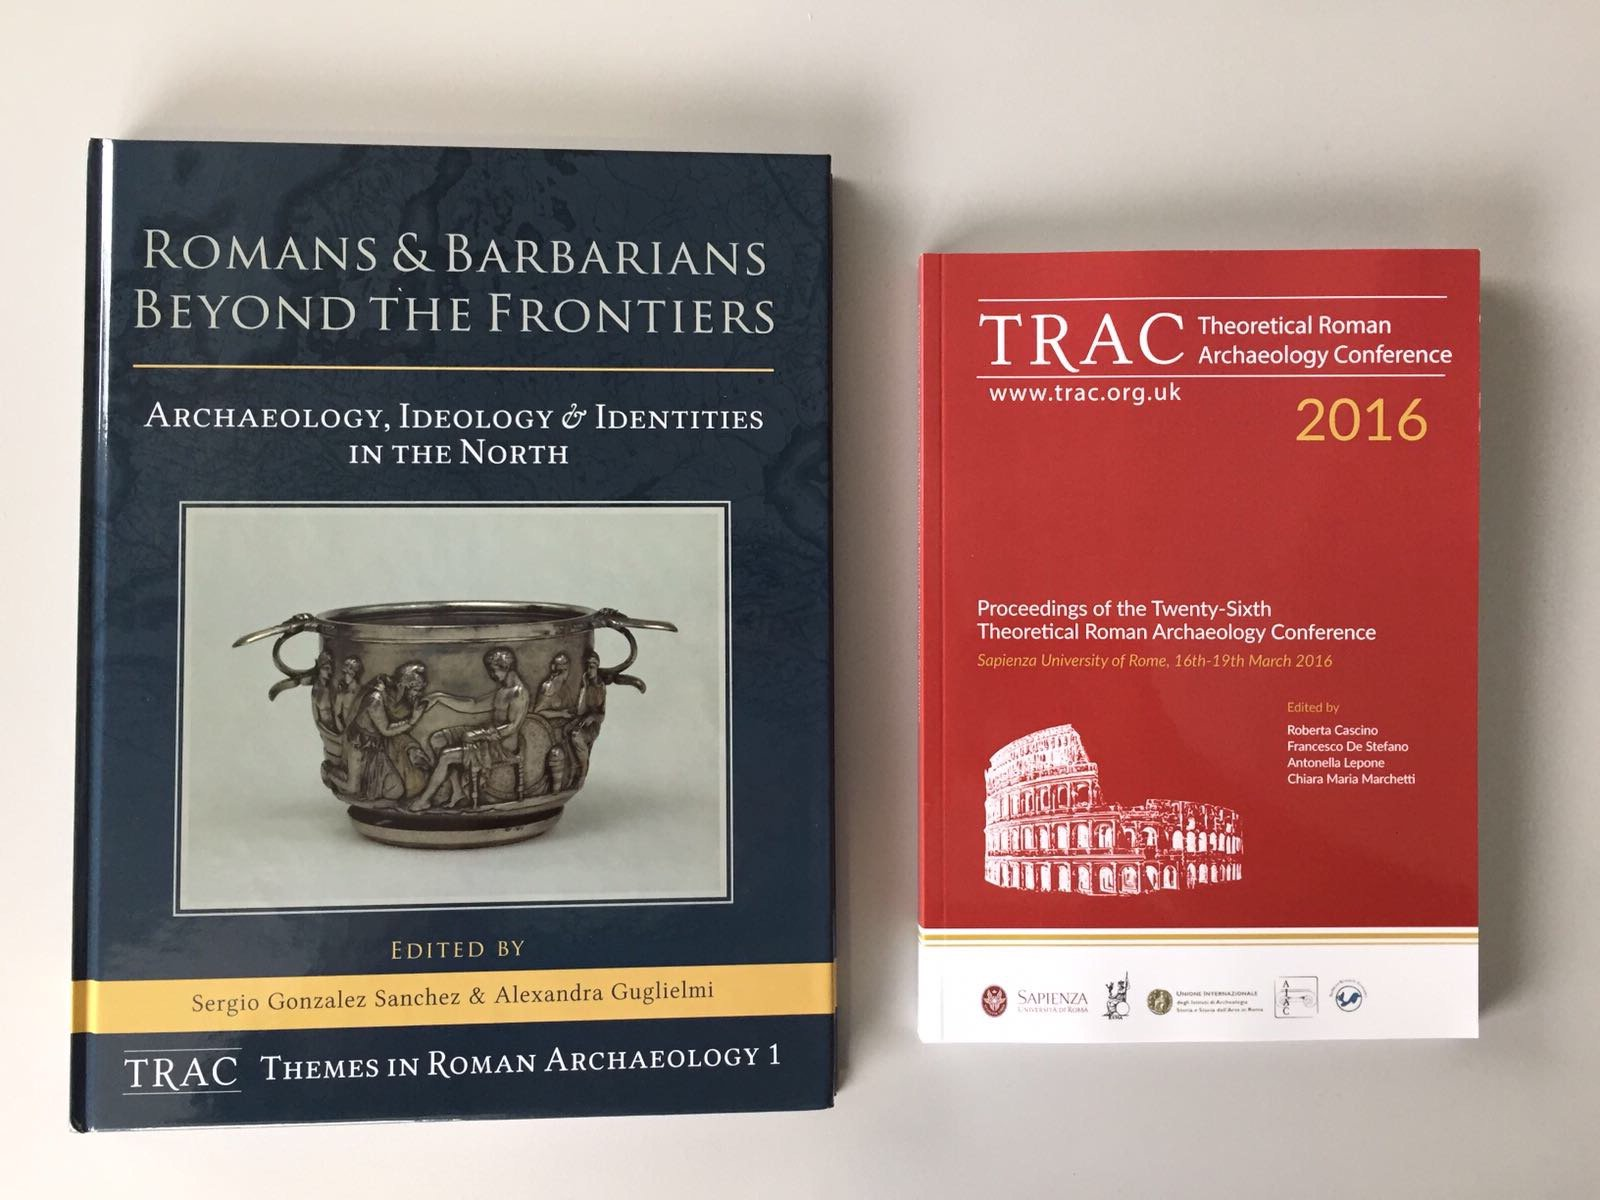 The publications have landed! pick up your copy of the 2016 Proceedings and Vol. 1 of our new Thematic Series at #TRACDurham https://t.co/uU7KP1PHmj